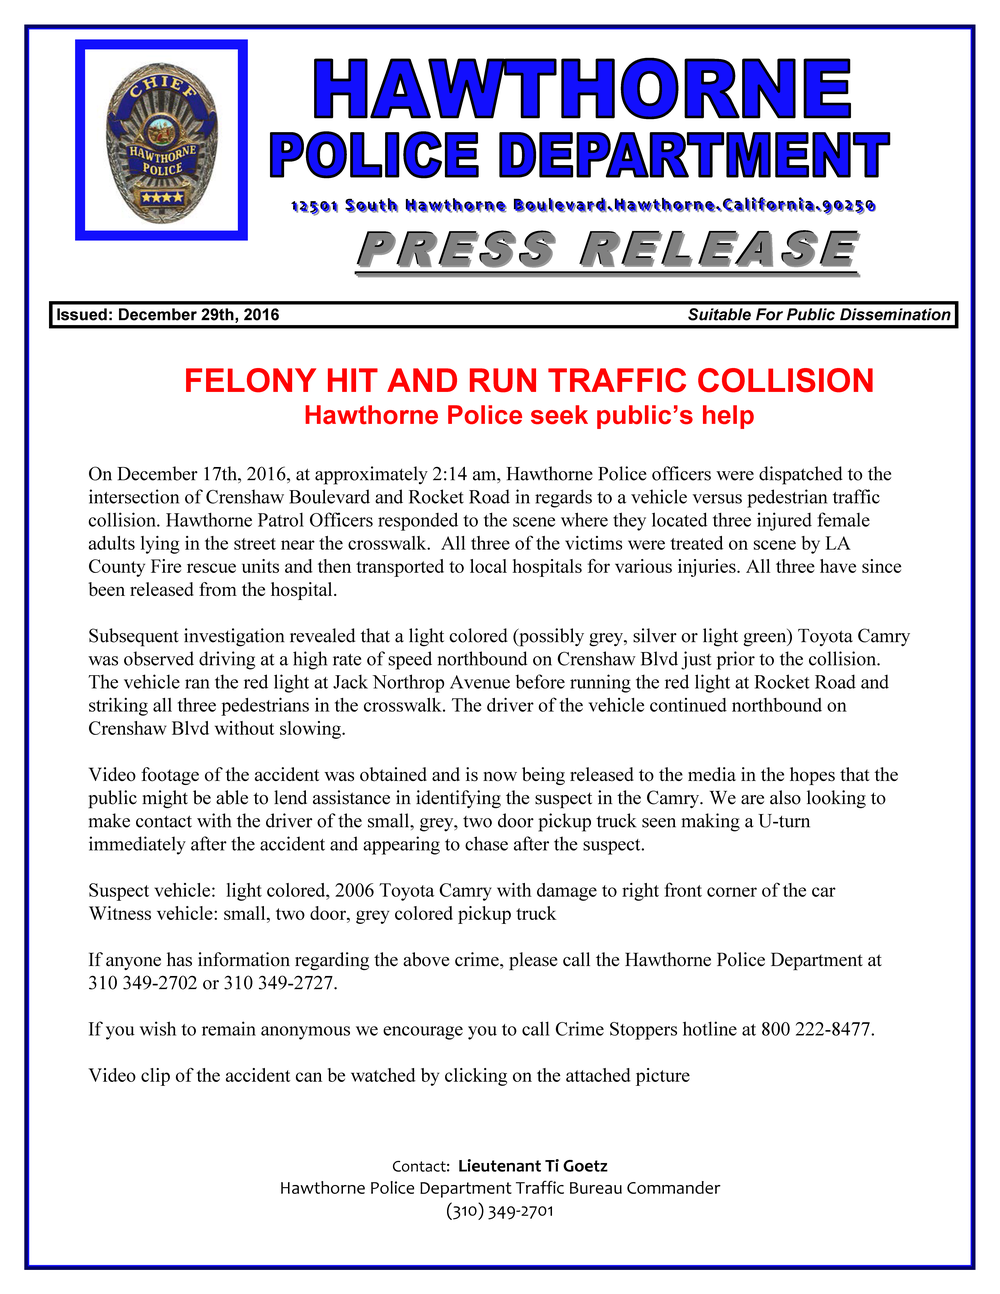 hit and run crosswalk press release_Page_1.png